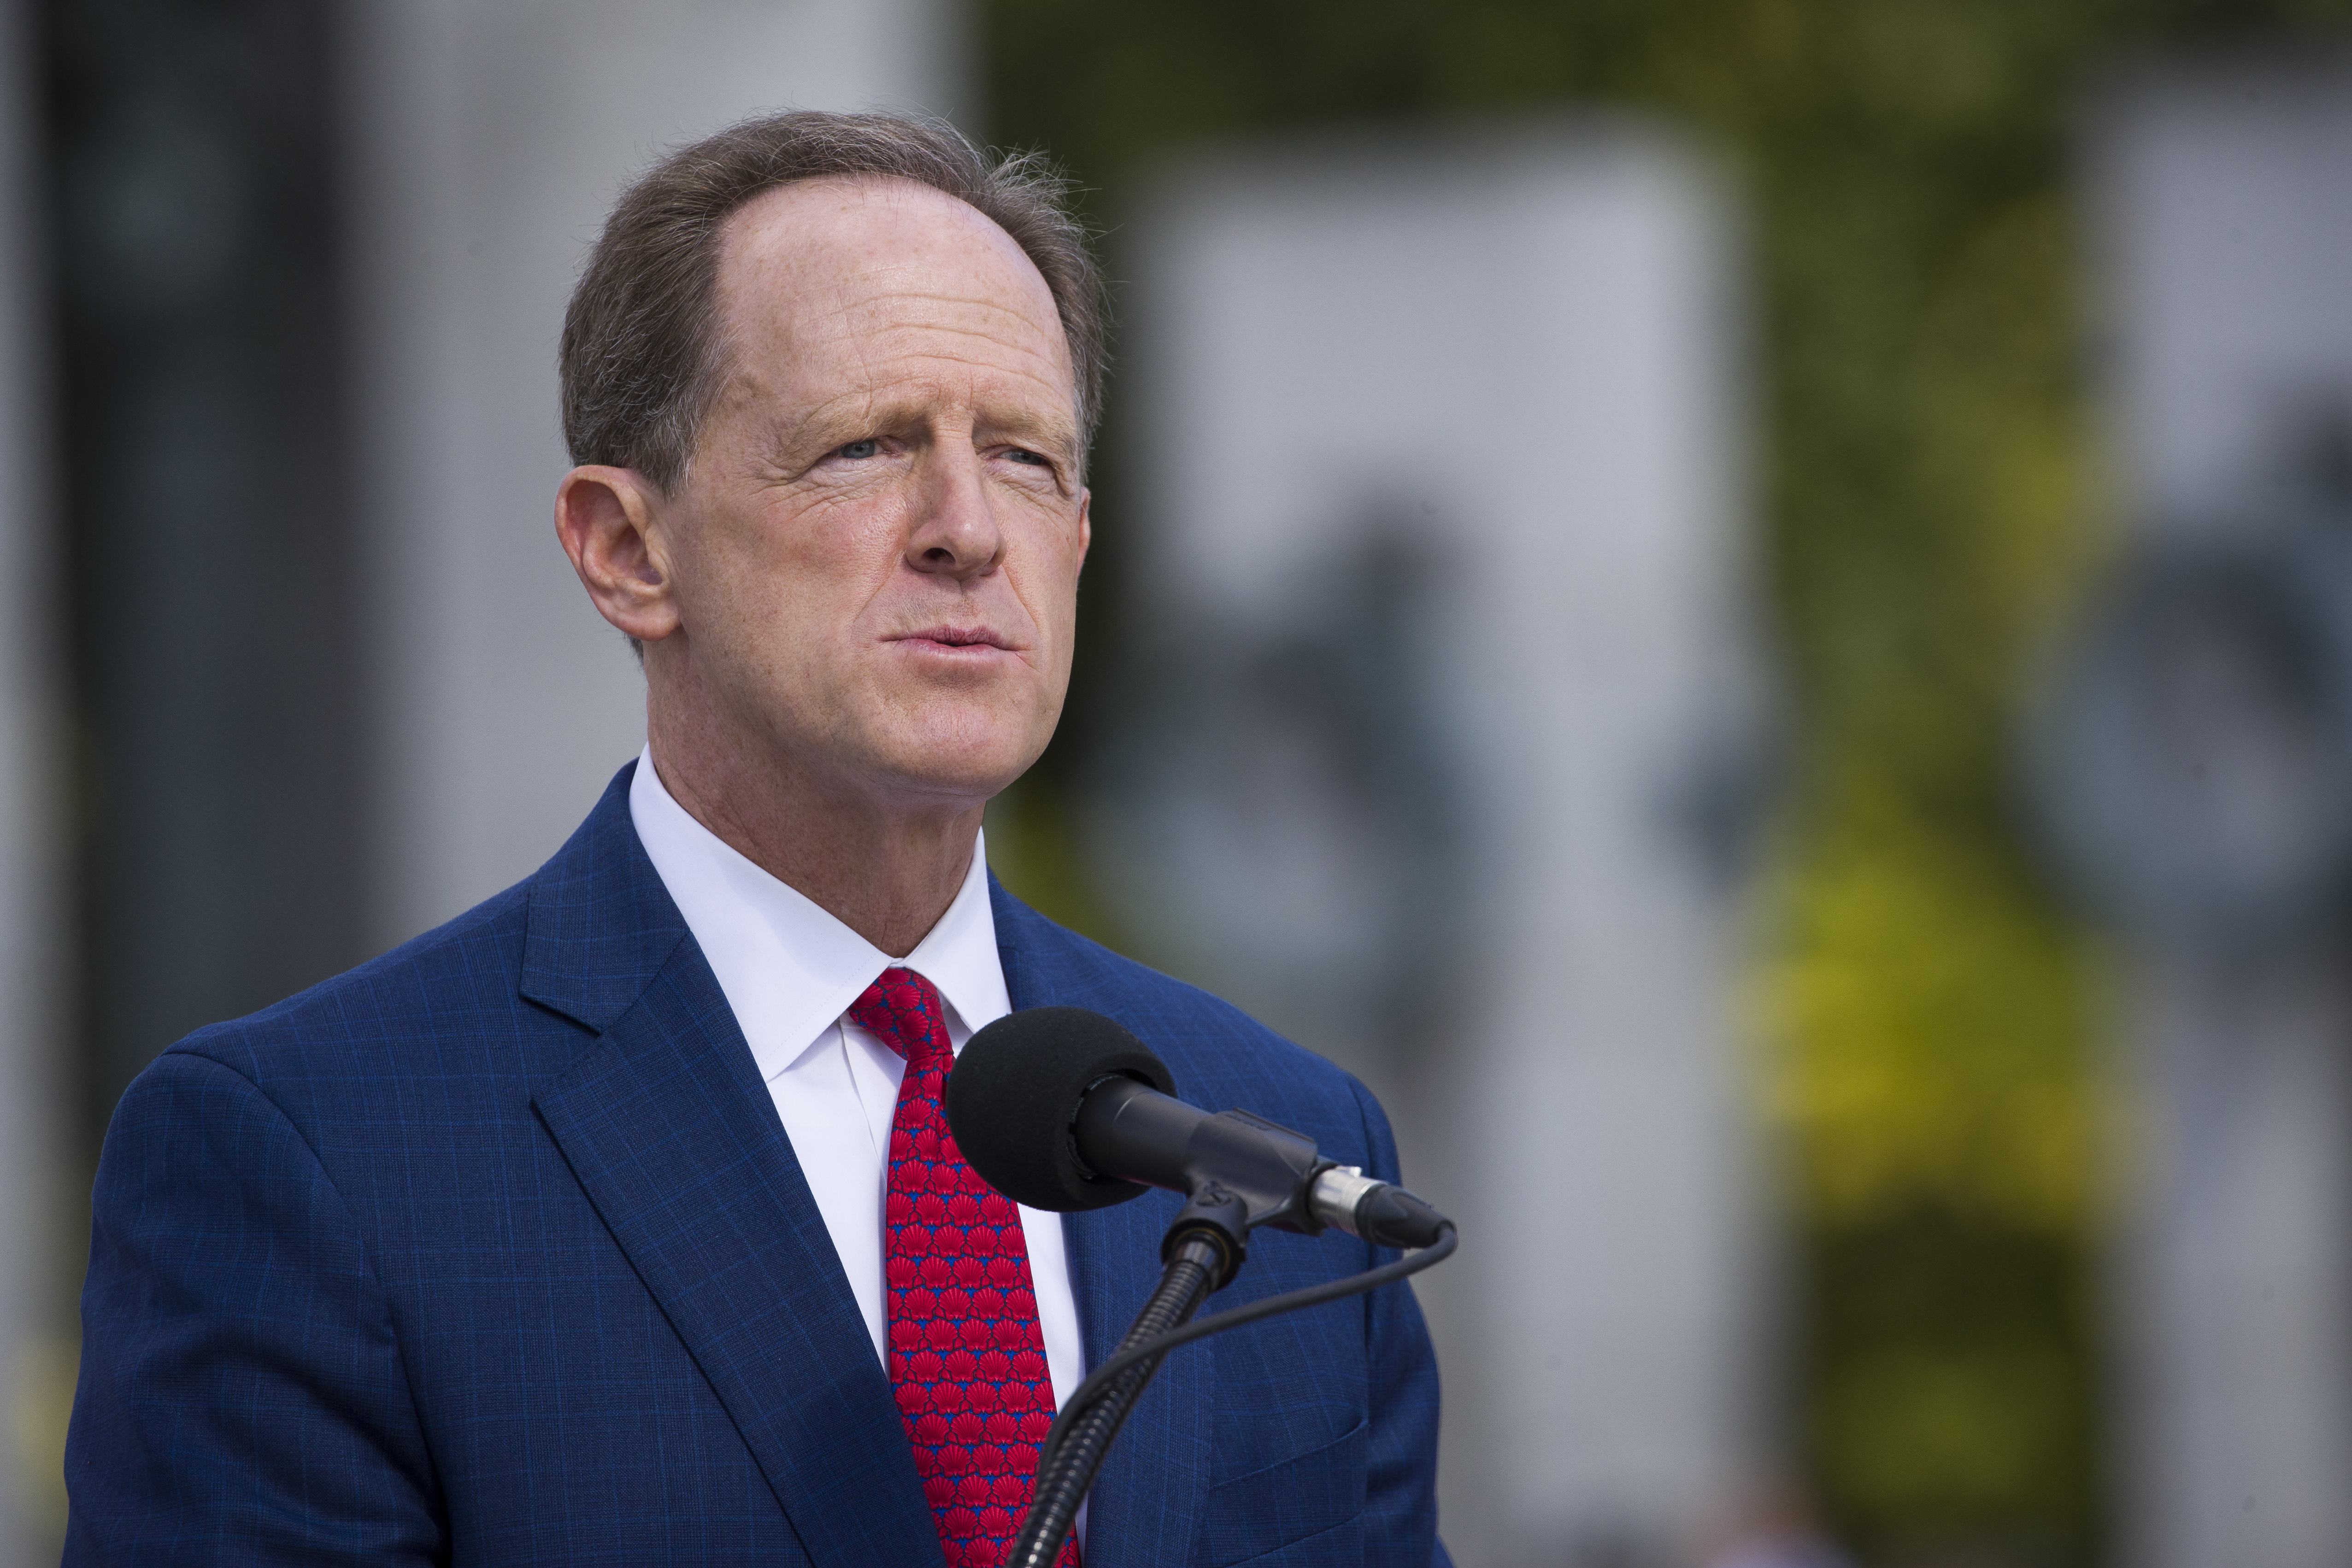 Toomey wont run for Senate again, or governor, source says